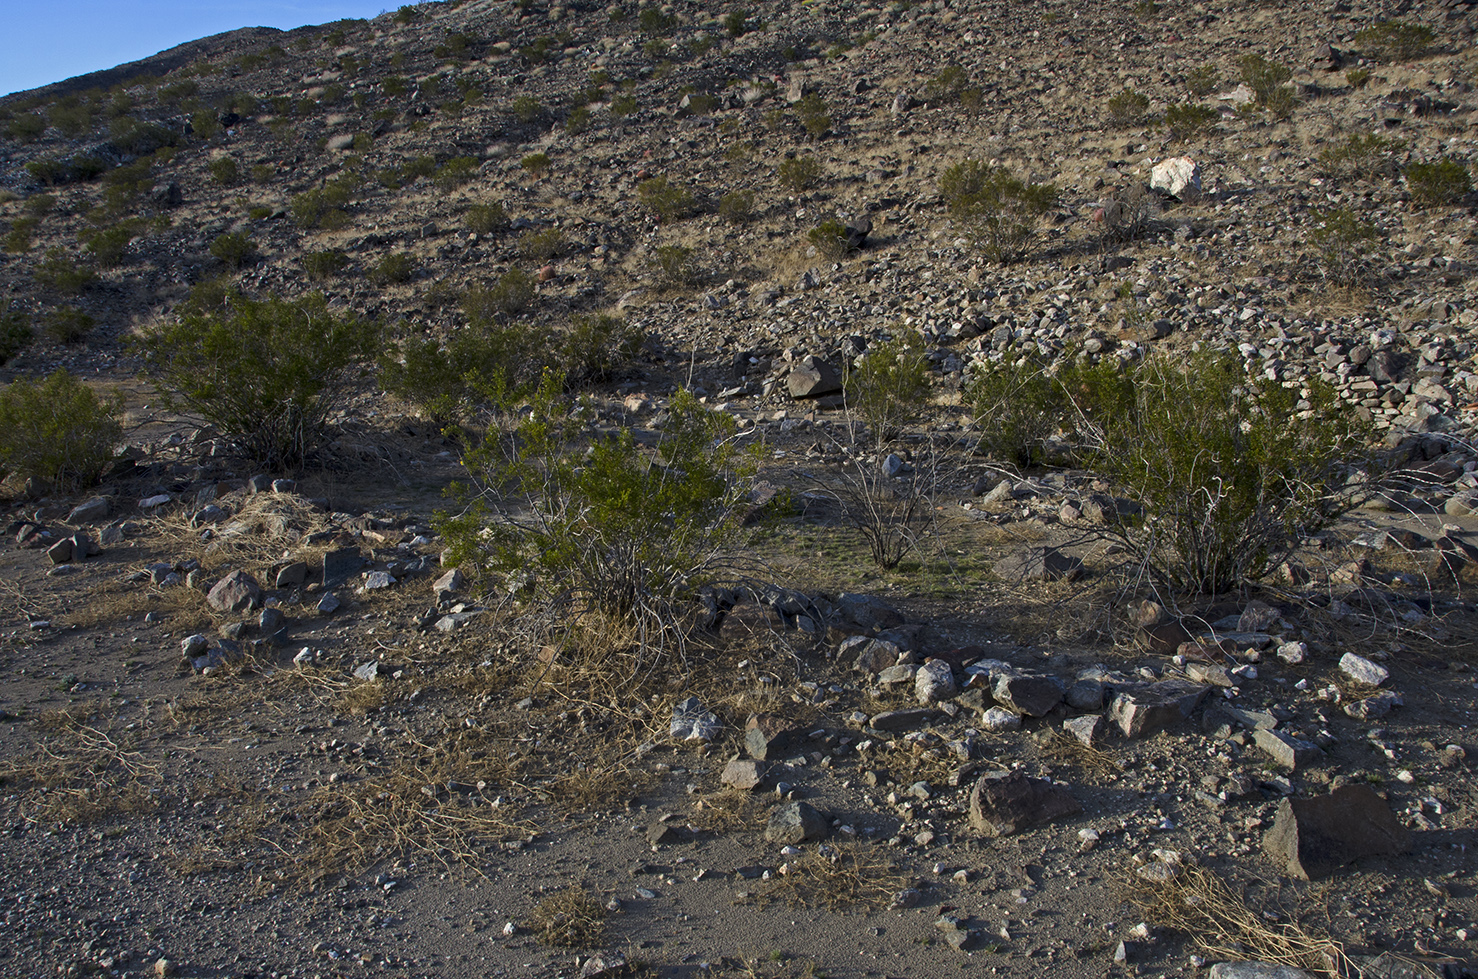 One of the possible building sites along the base of the mountains.